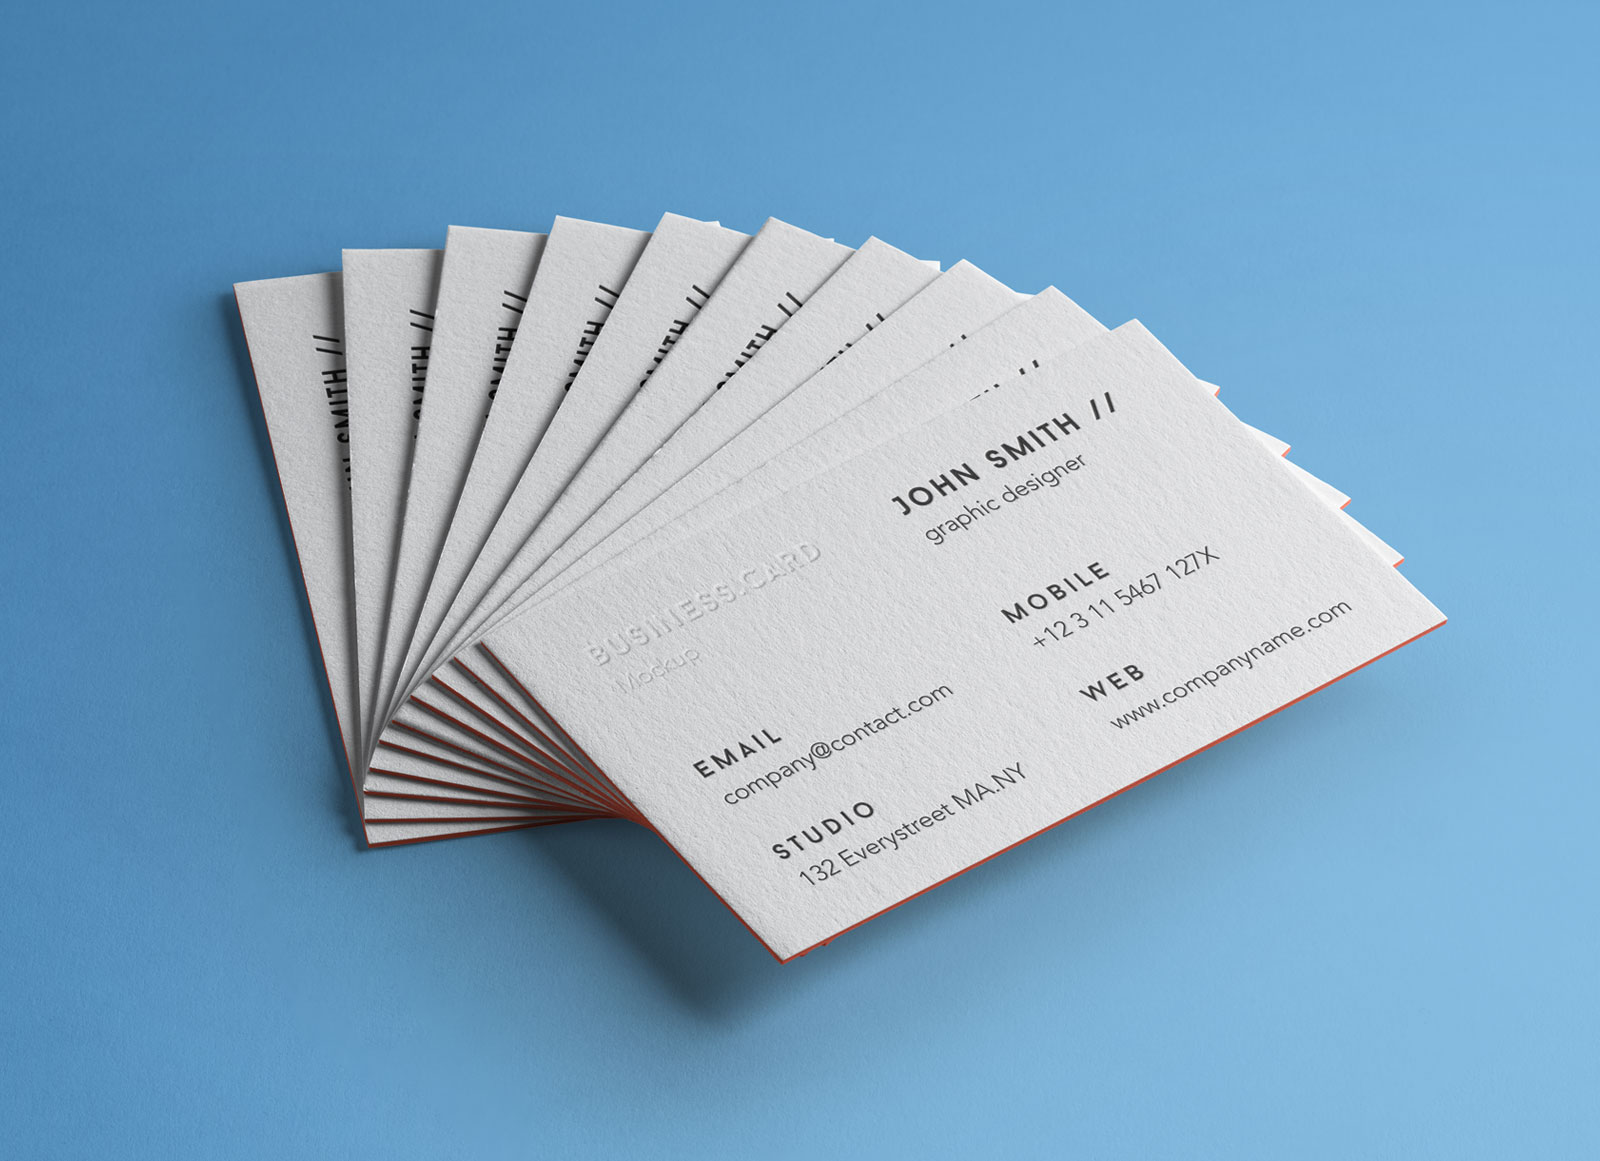 Free Letterpressed Business Card Mockup with Colored Edges - Good ...